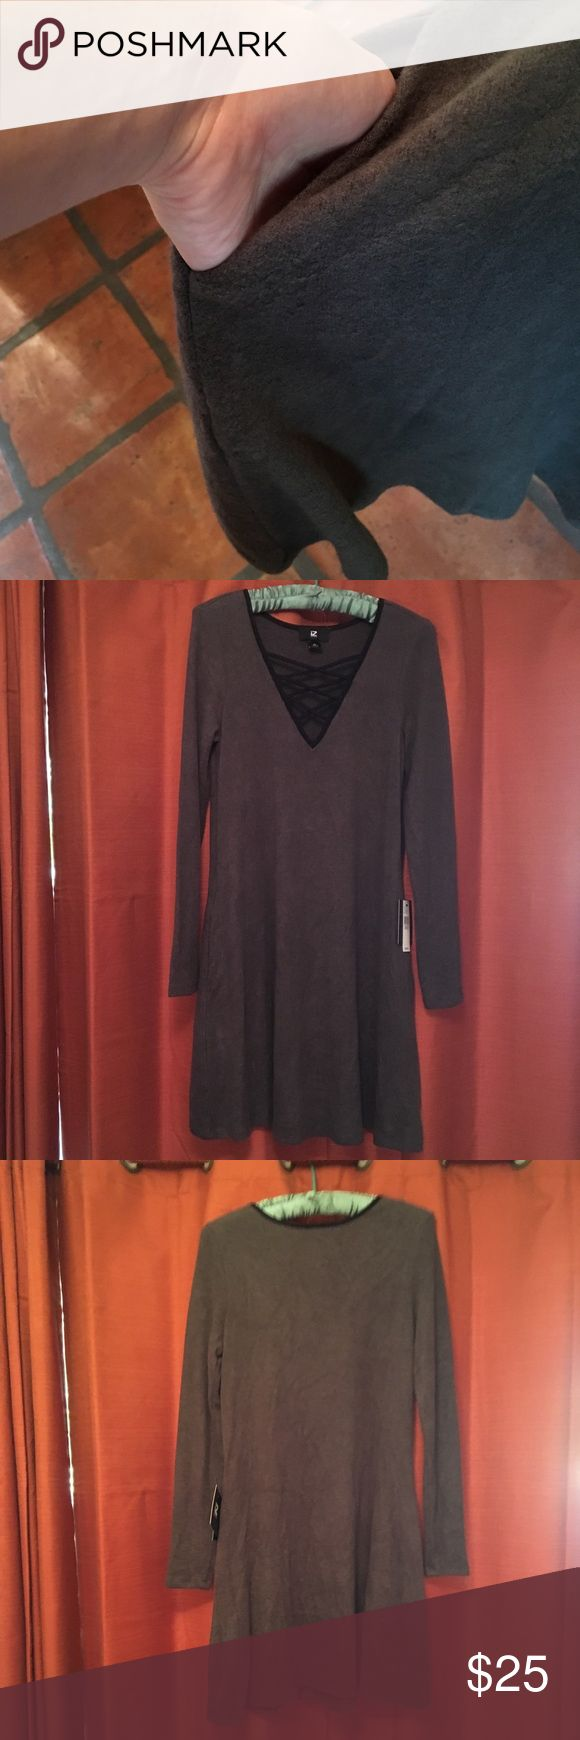 Grey long sleeve dress Grey long sleeve dress with black lace up v neck. Fleece like material, very soft, warm and comfortable. Has pockets too. Tag says olive color but It looks more grey to me. Brand new with tags. Iz Byer Dresses Long Sleeve